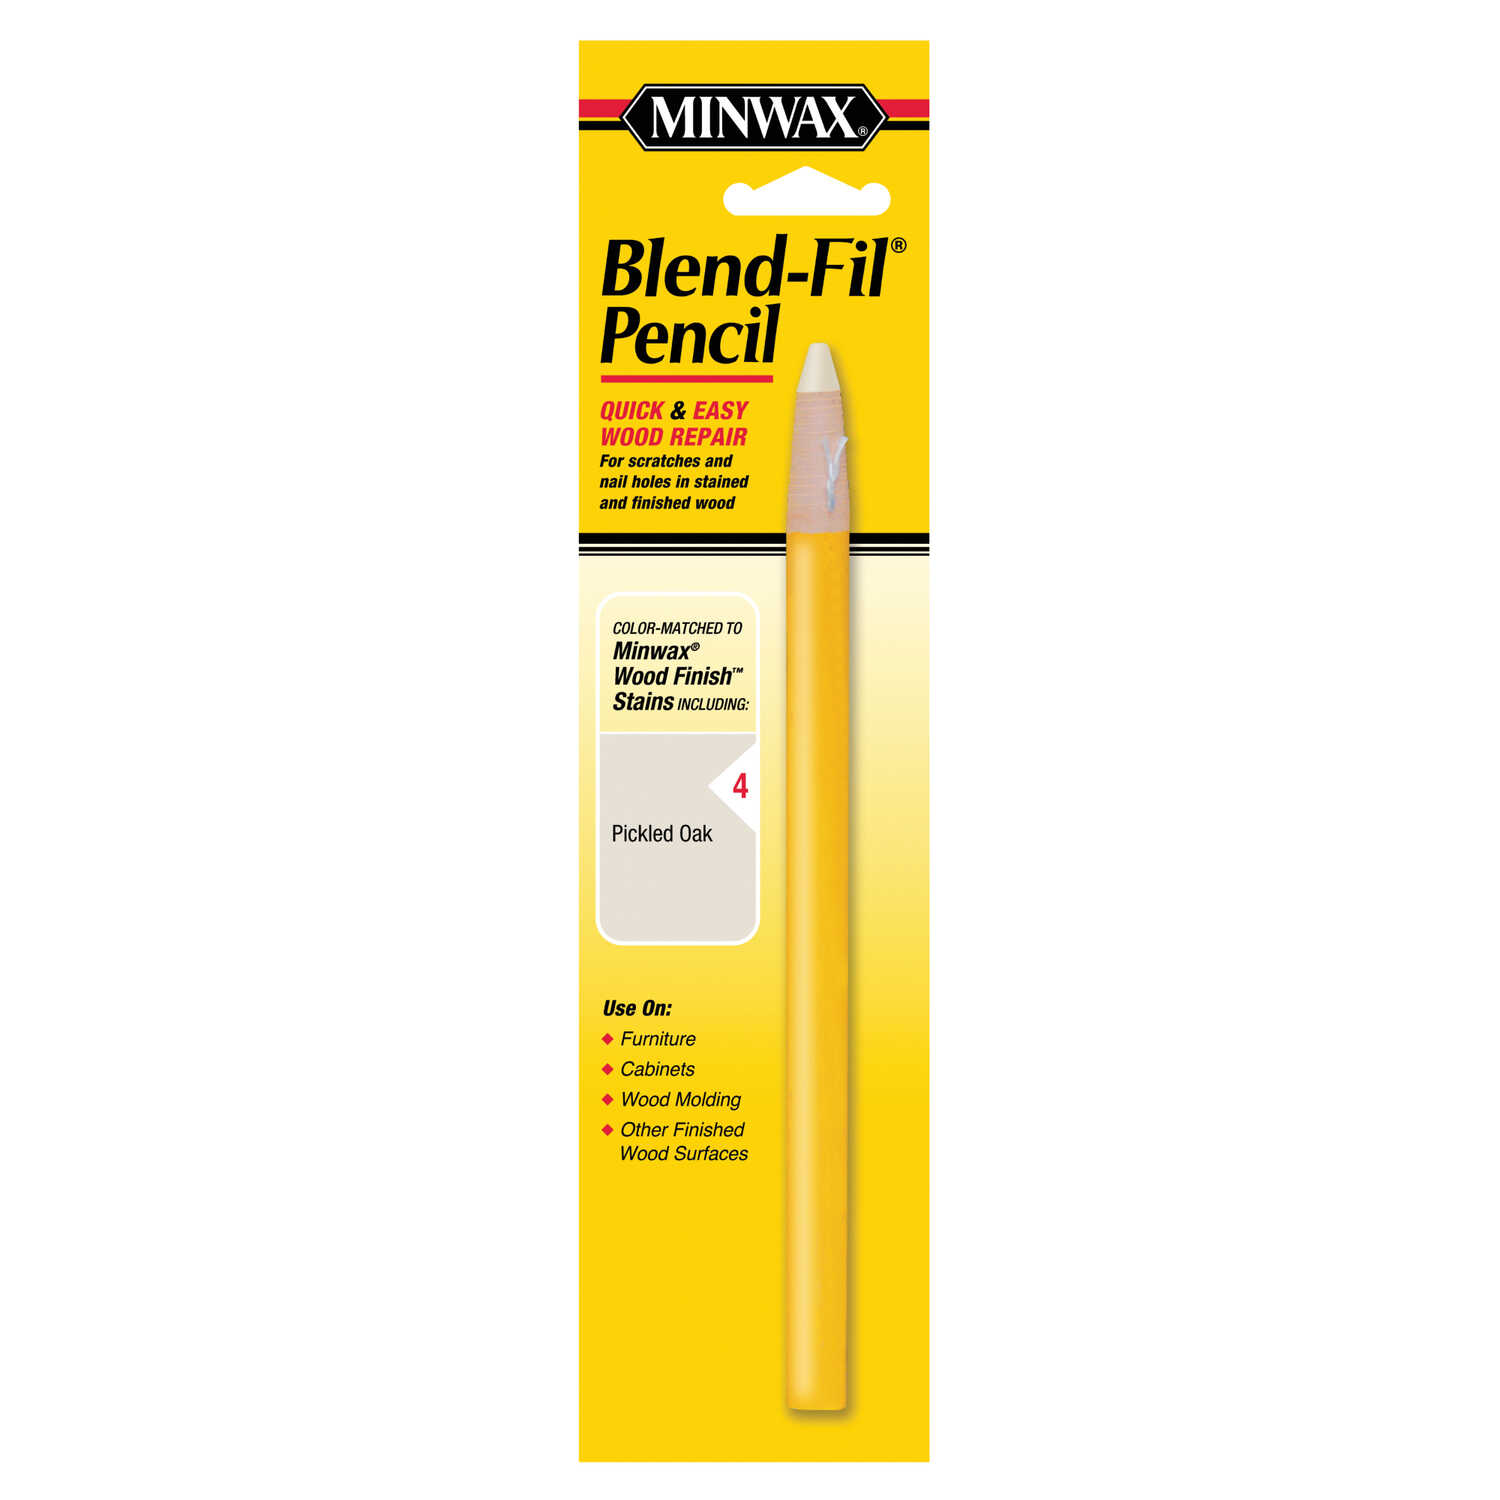 Minwax  Blend-Fil No. 4  Pickled Oak  1 oz. Wood Pencil